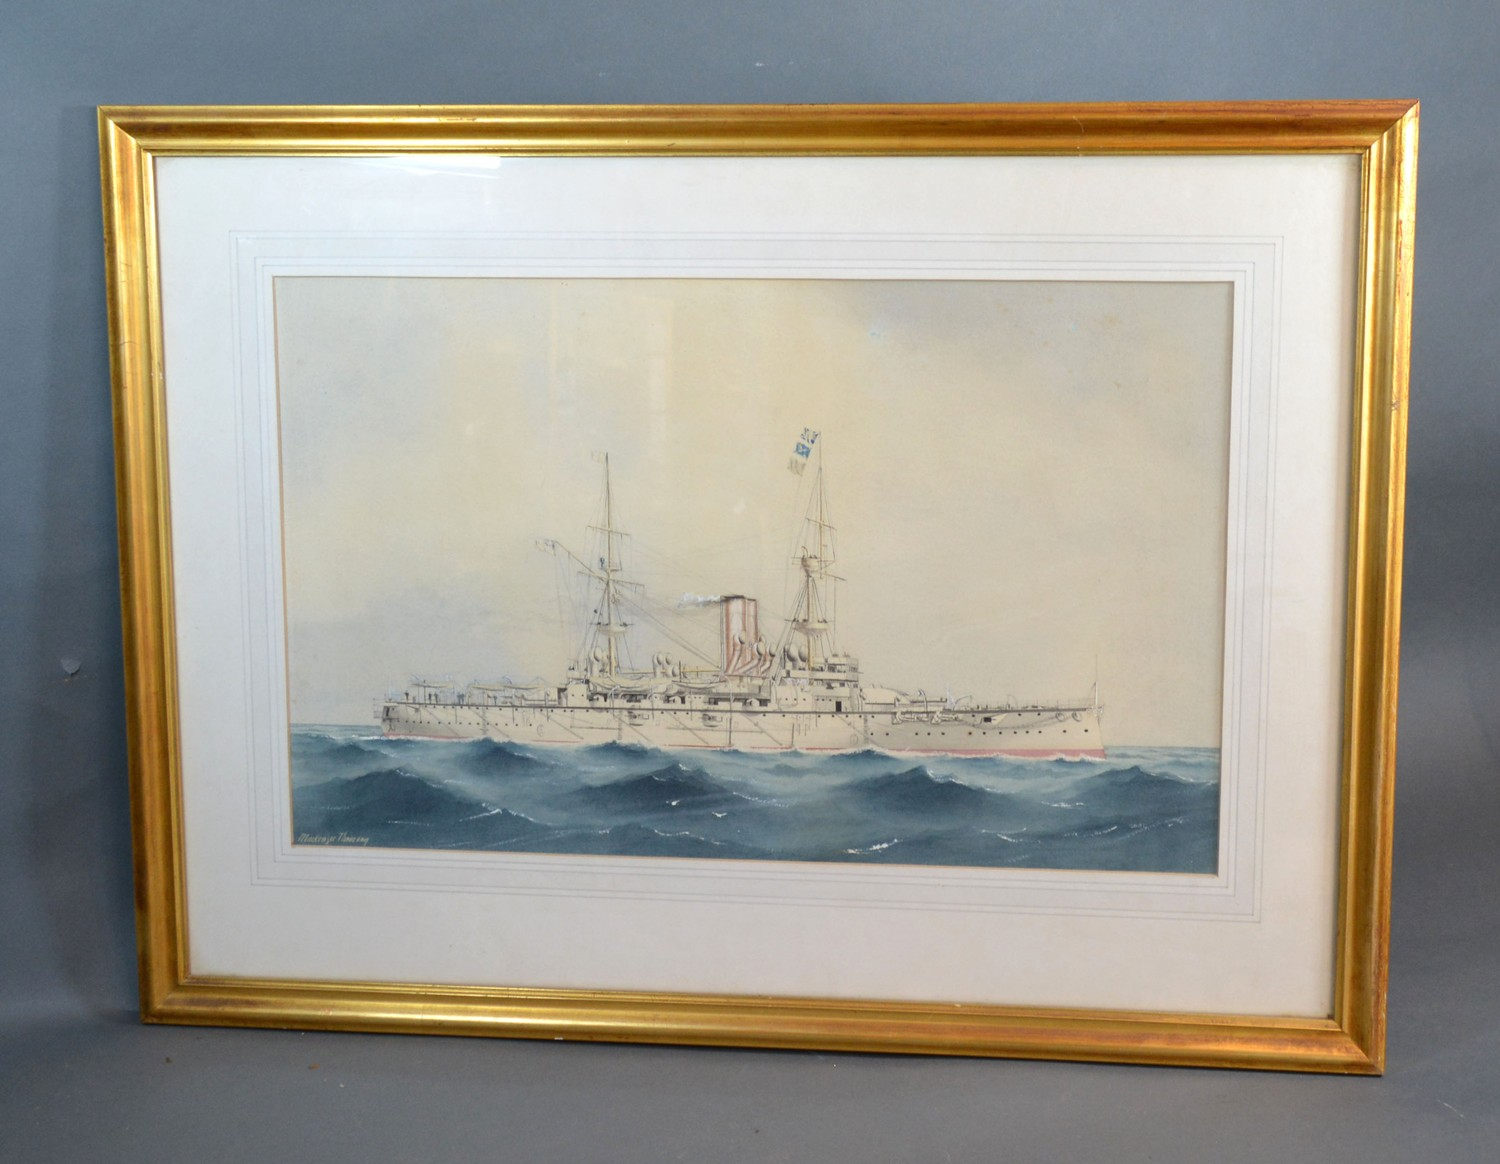 William MacKenzie Thomson Study of a Battleship at Sea watercolour, signed 30 x 48 cms - Image 2 of 3